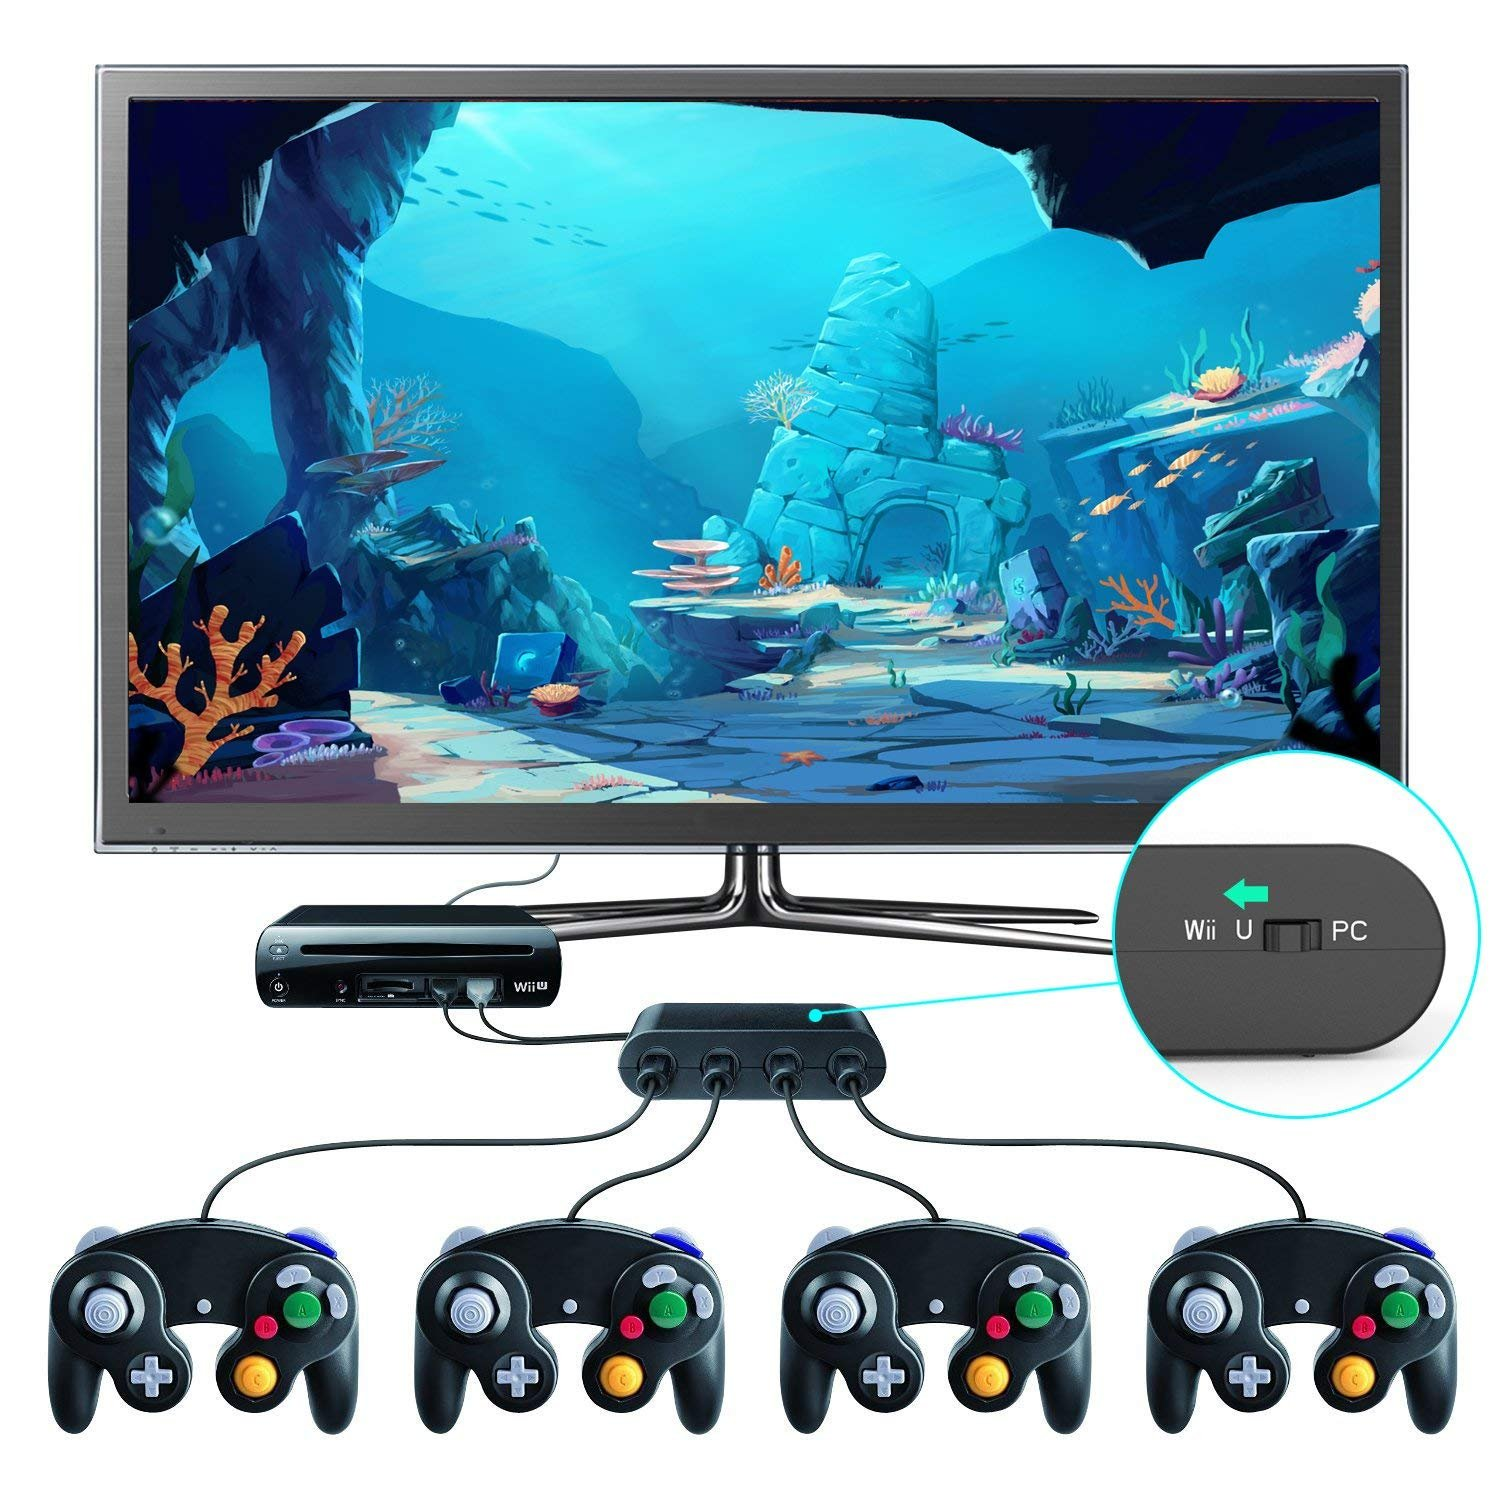 Gamecube Controller Adapter. Super Smash Bros Wii U Gamecube Adapter for Pc, Switch. No Driver Need and Easy to Use. 4 Port Black Gamecube Adapter(Improved Version) by Cloudream (Image #5)